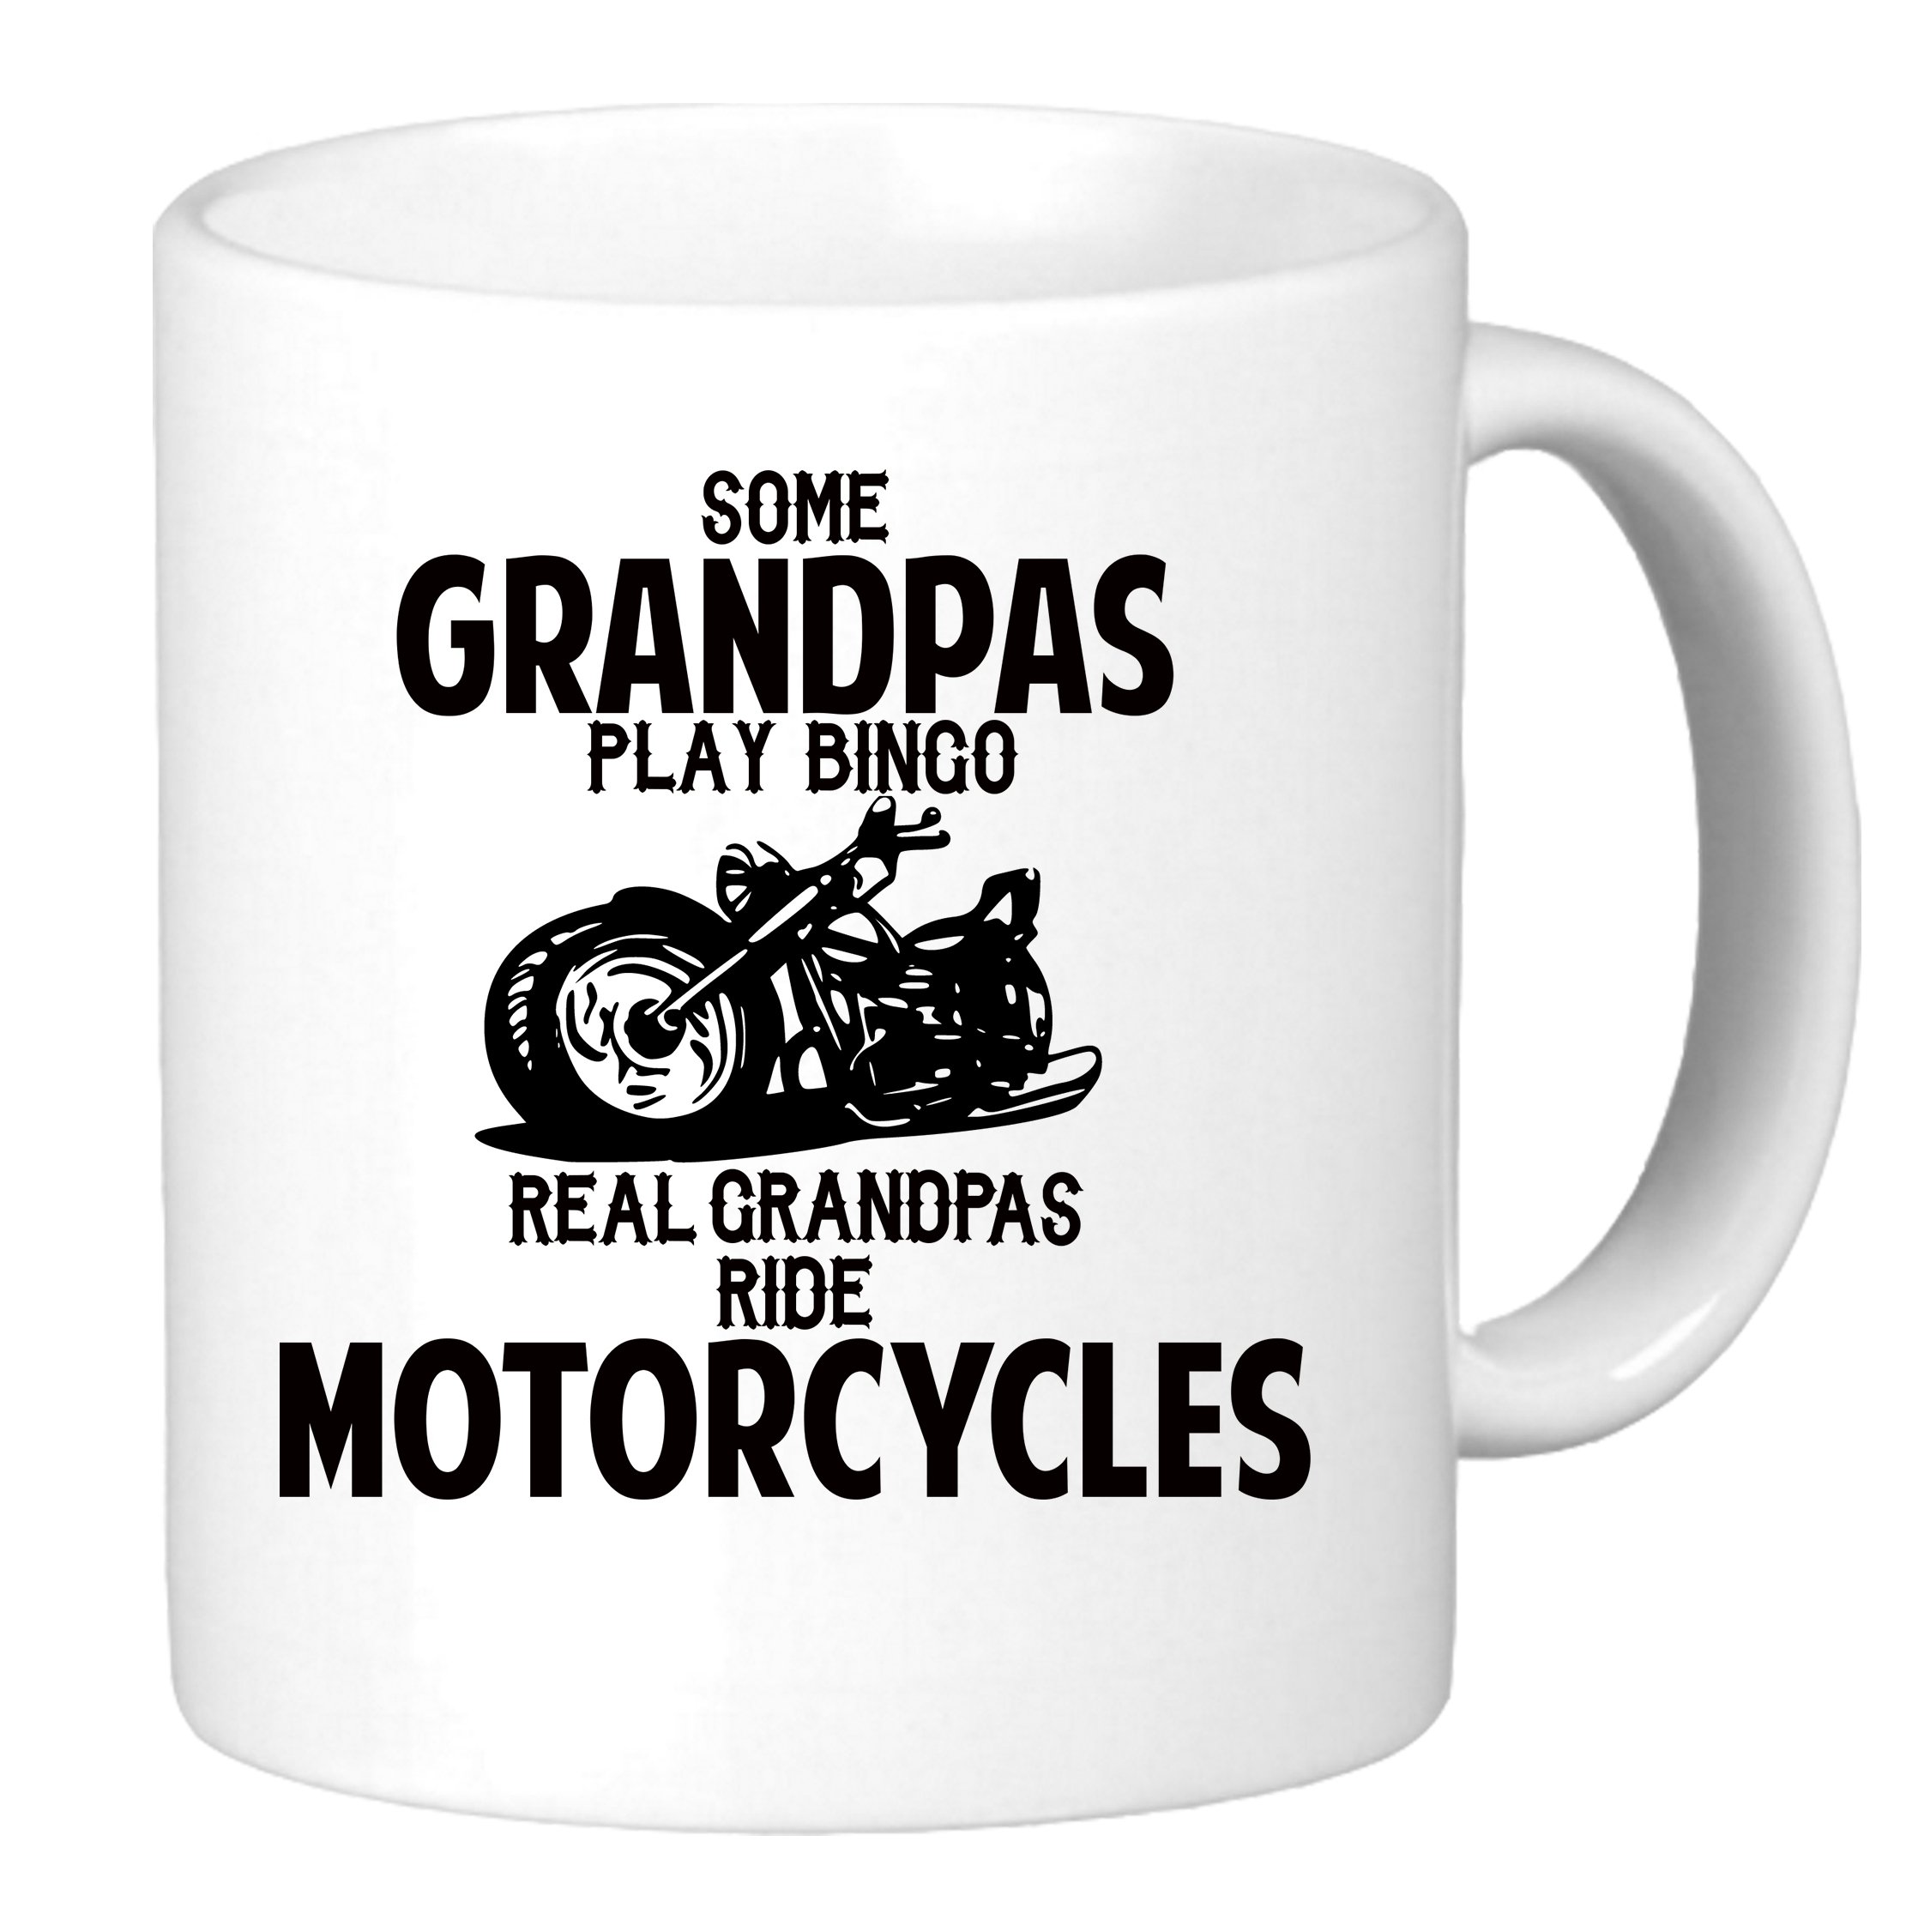 Some Grandpa's Play Bingo Real Grandpa's Ride Motorcycles. Funny Unique Biker Inspired Novelty Coffee Mug Cup Motorcycle Birthday Present for Grandpa.